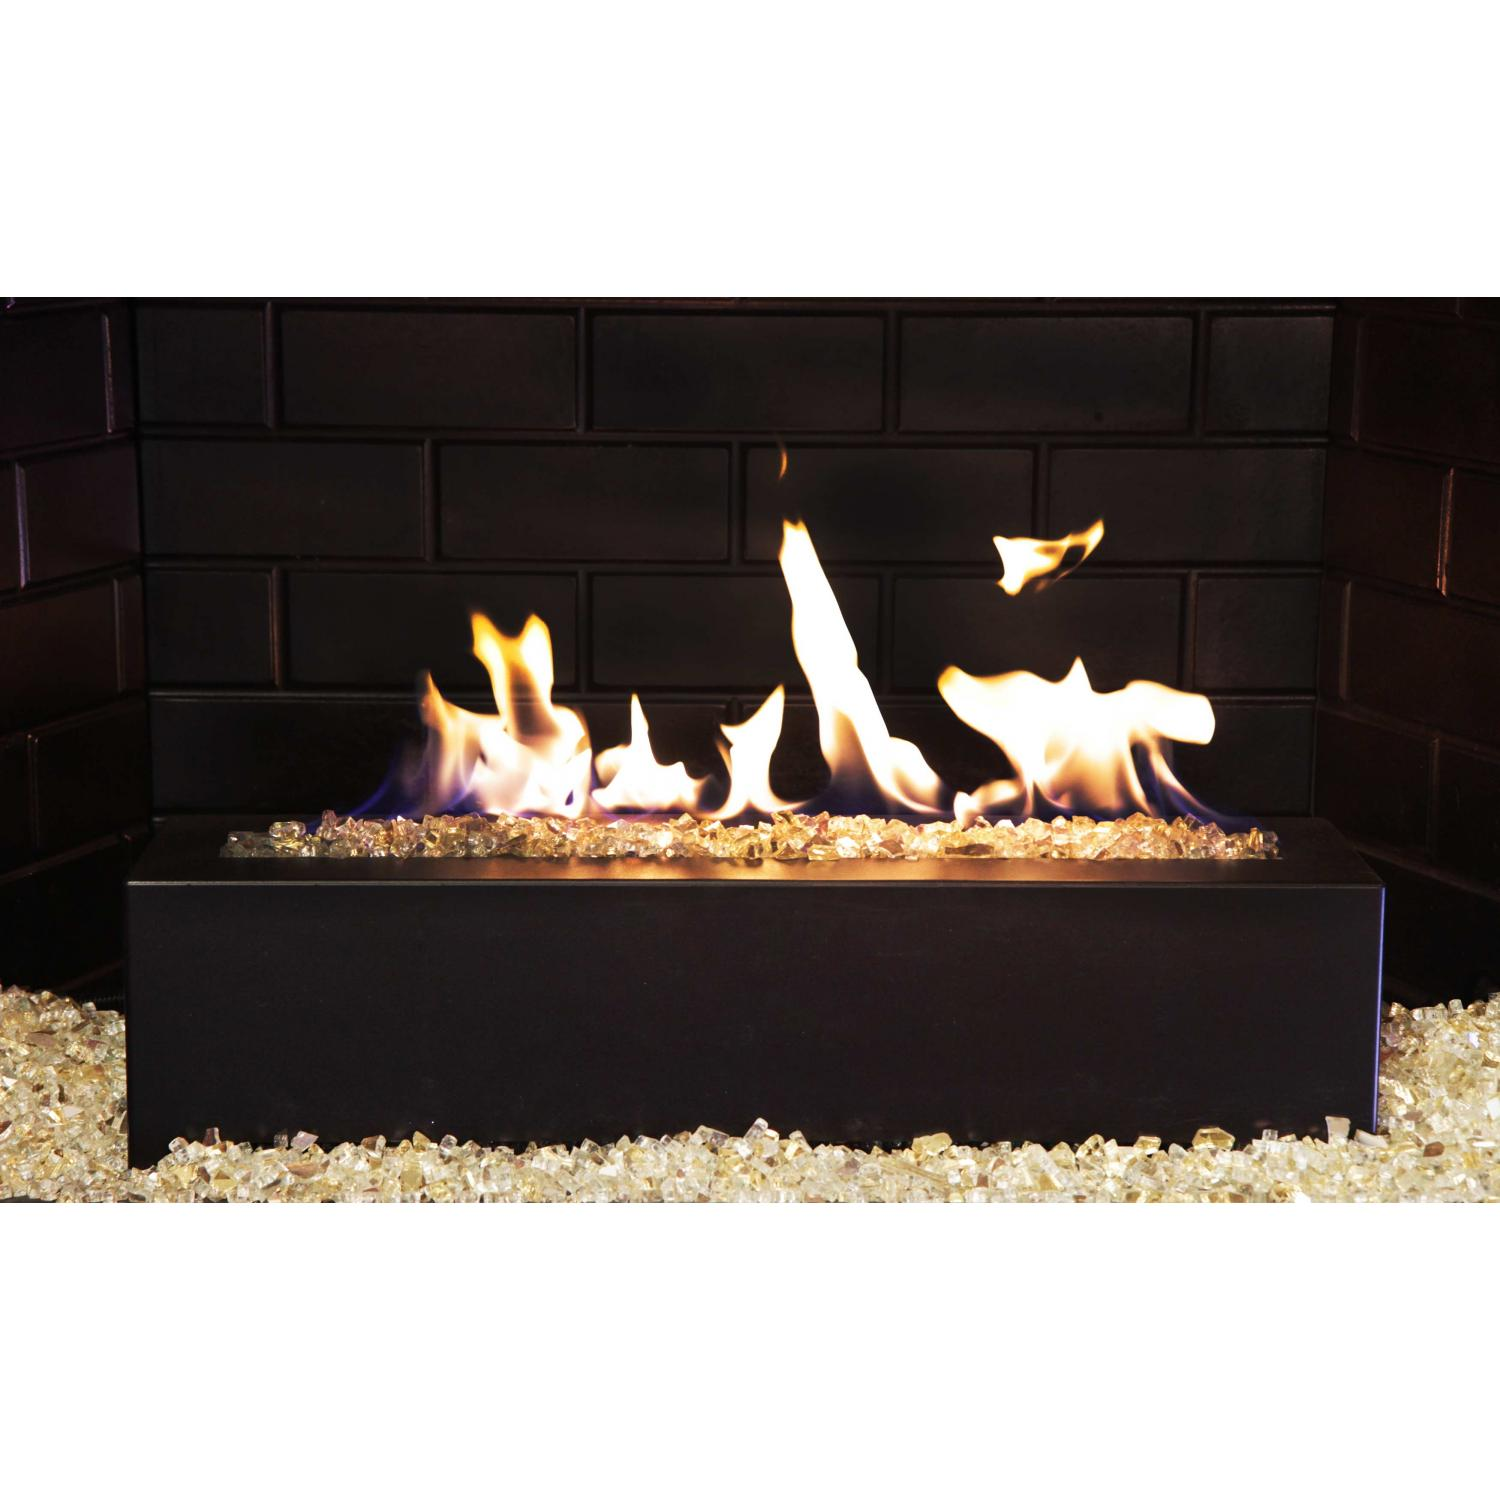 Picture of Golden Blount 24-Inch Alpine Linear Natural Gas Burner With Decorative Black Front Face And Gold Reflective Fire Glass